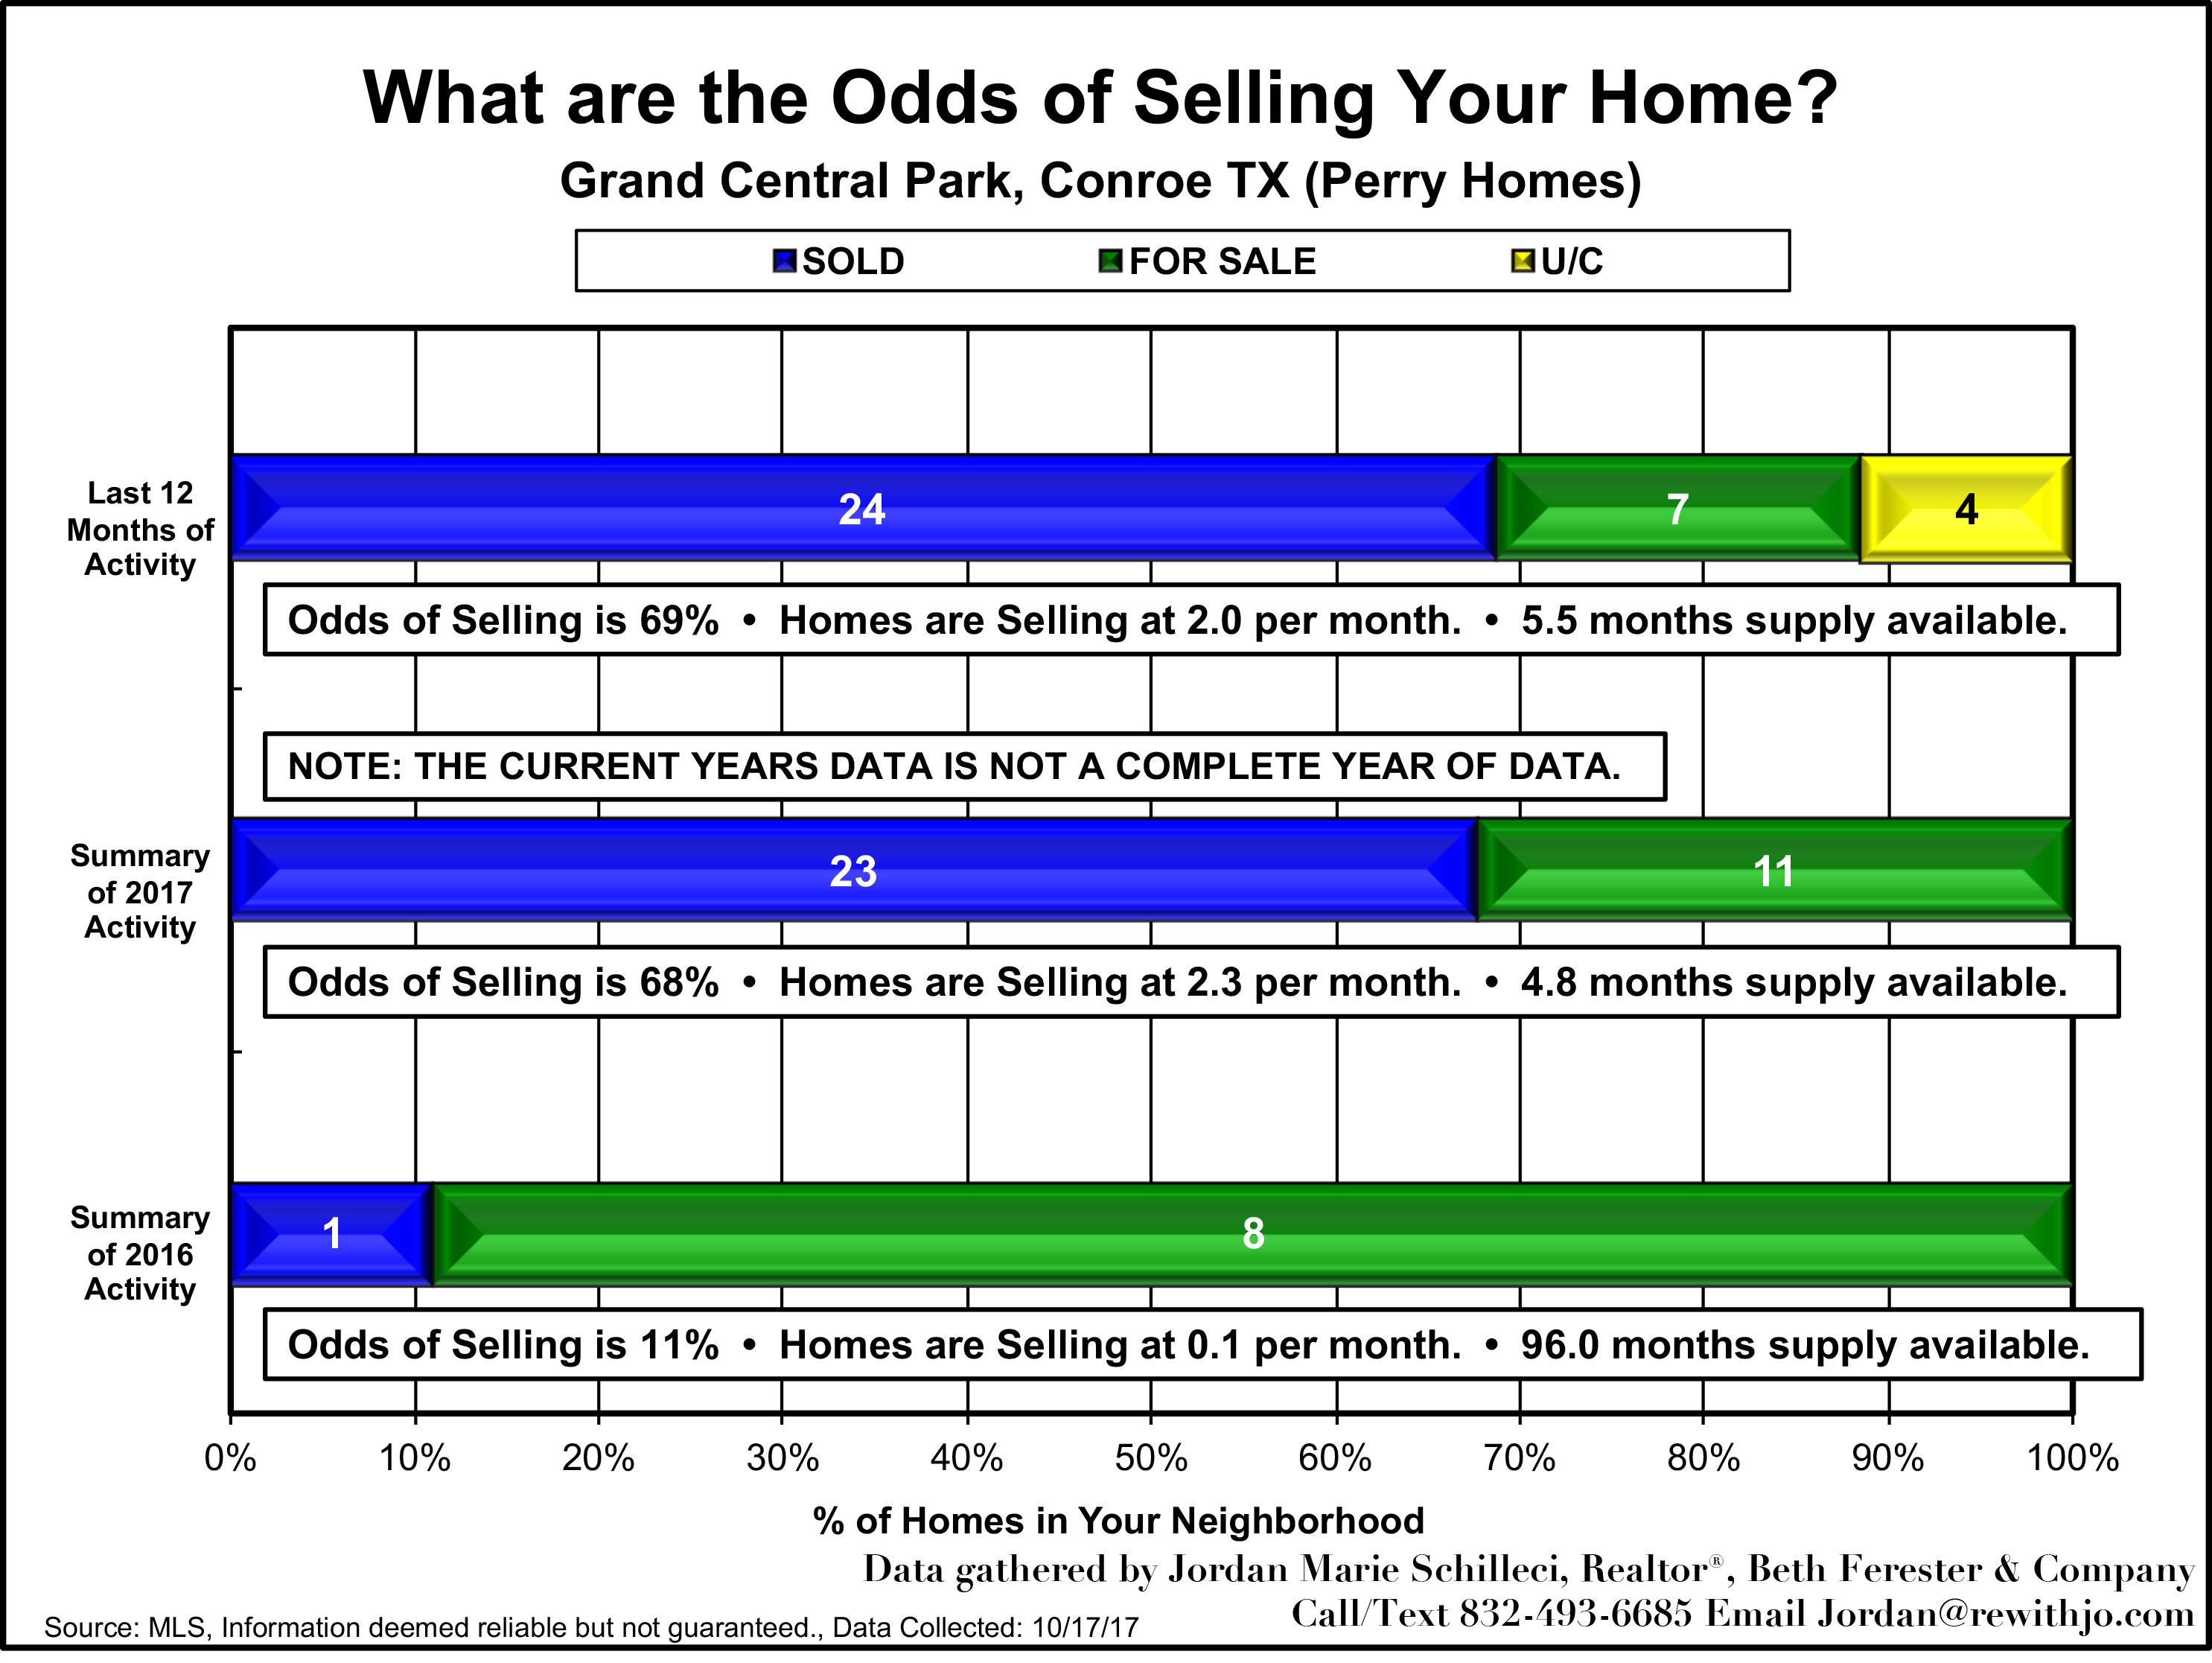 Perry Homes - Grand Central Park - Conroe Texas - Mid-October 2017 Market Update - Odds of Selling